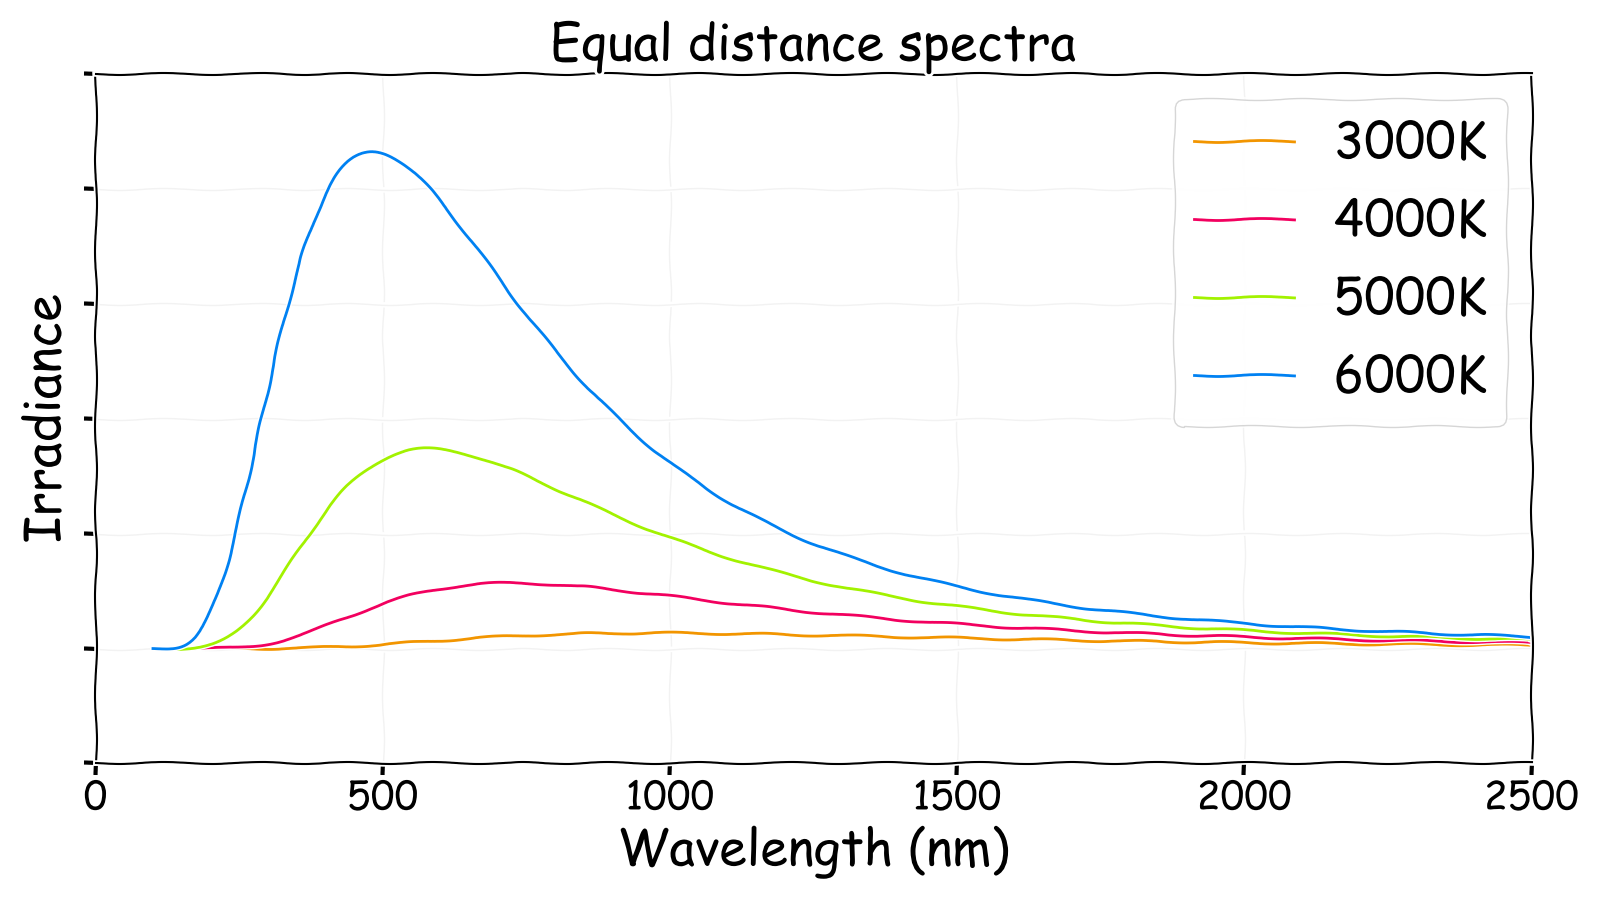 Irradiance spectra for different temperature stars